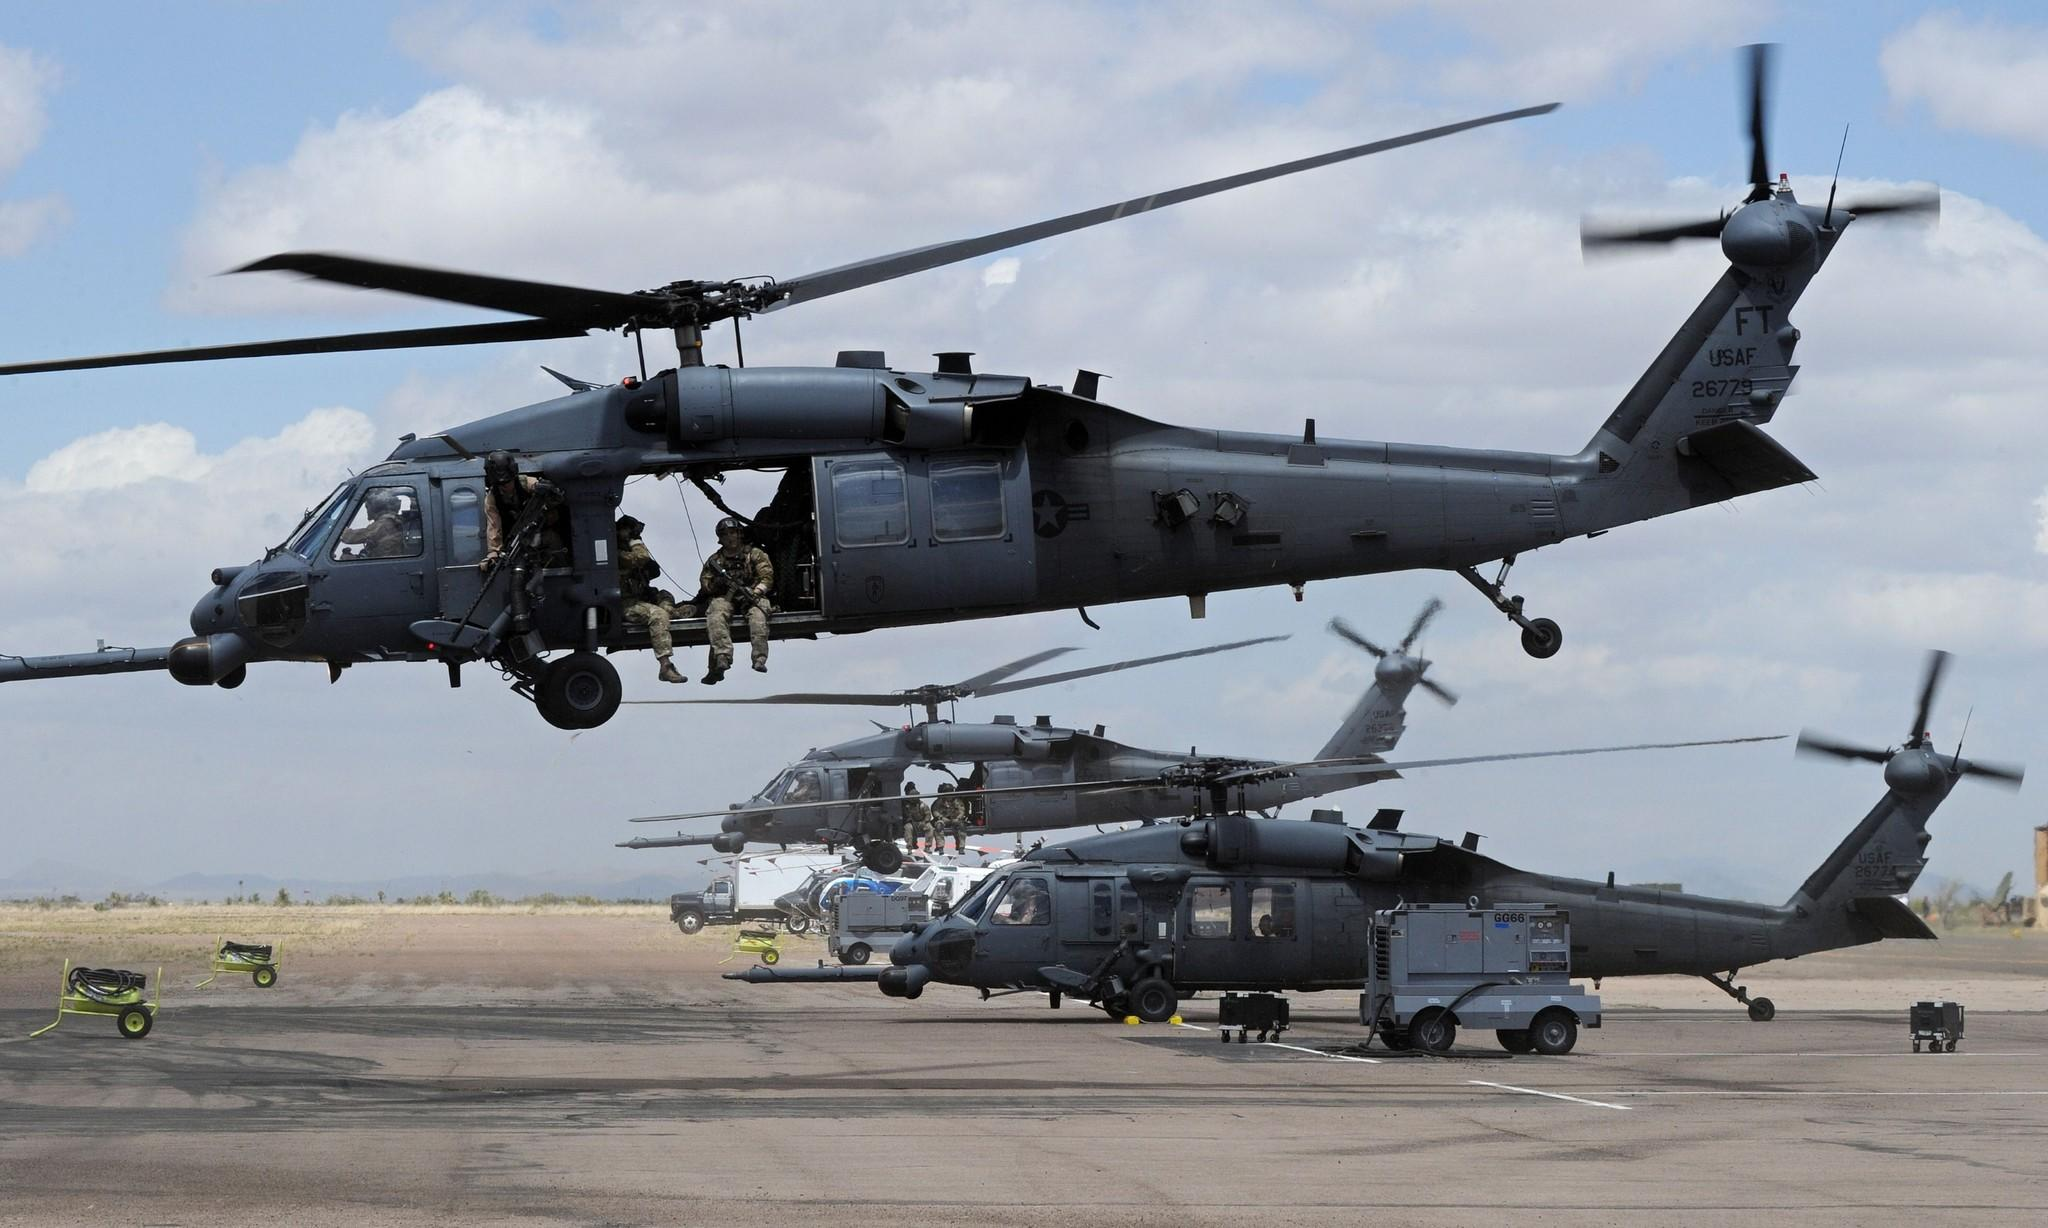 Elicottero Stealth : U s air force helicopter crashes on britain eastern